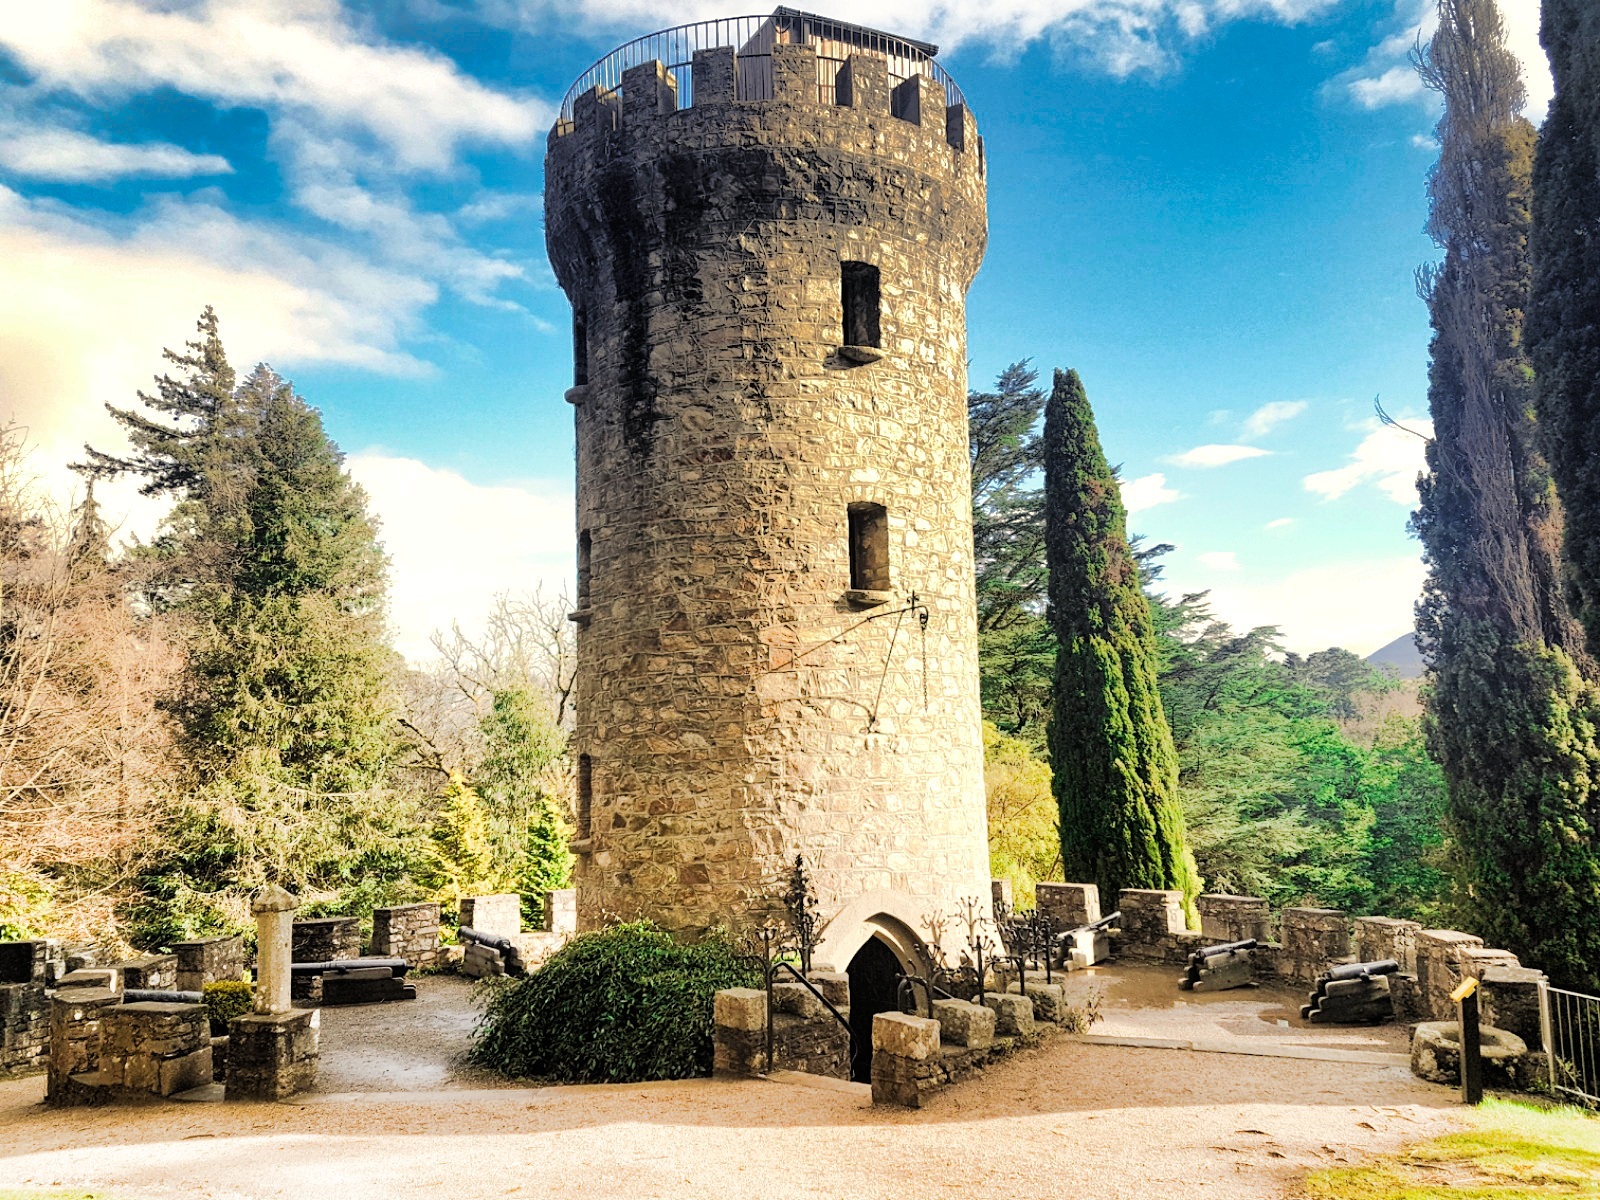 2017-03-27-13-01-49 castle in powerscourt